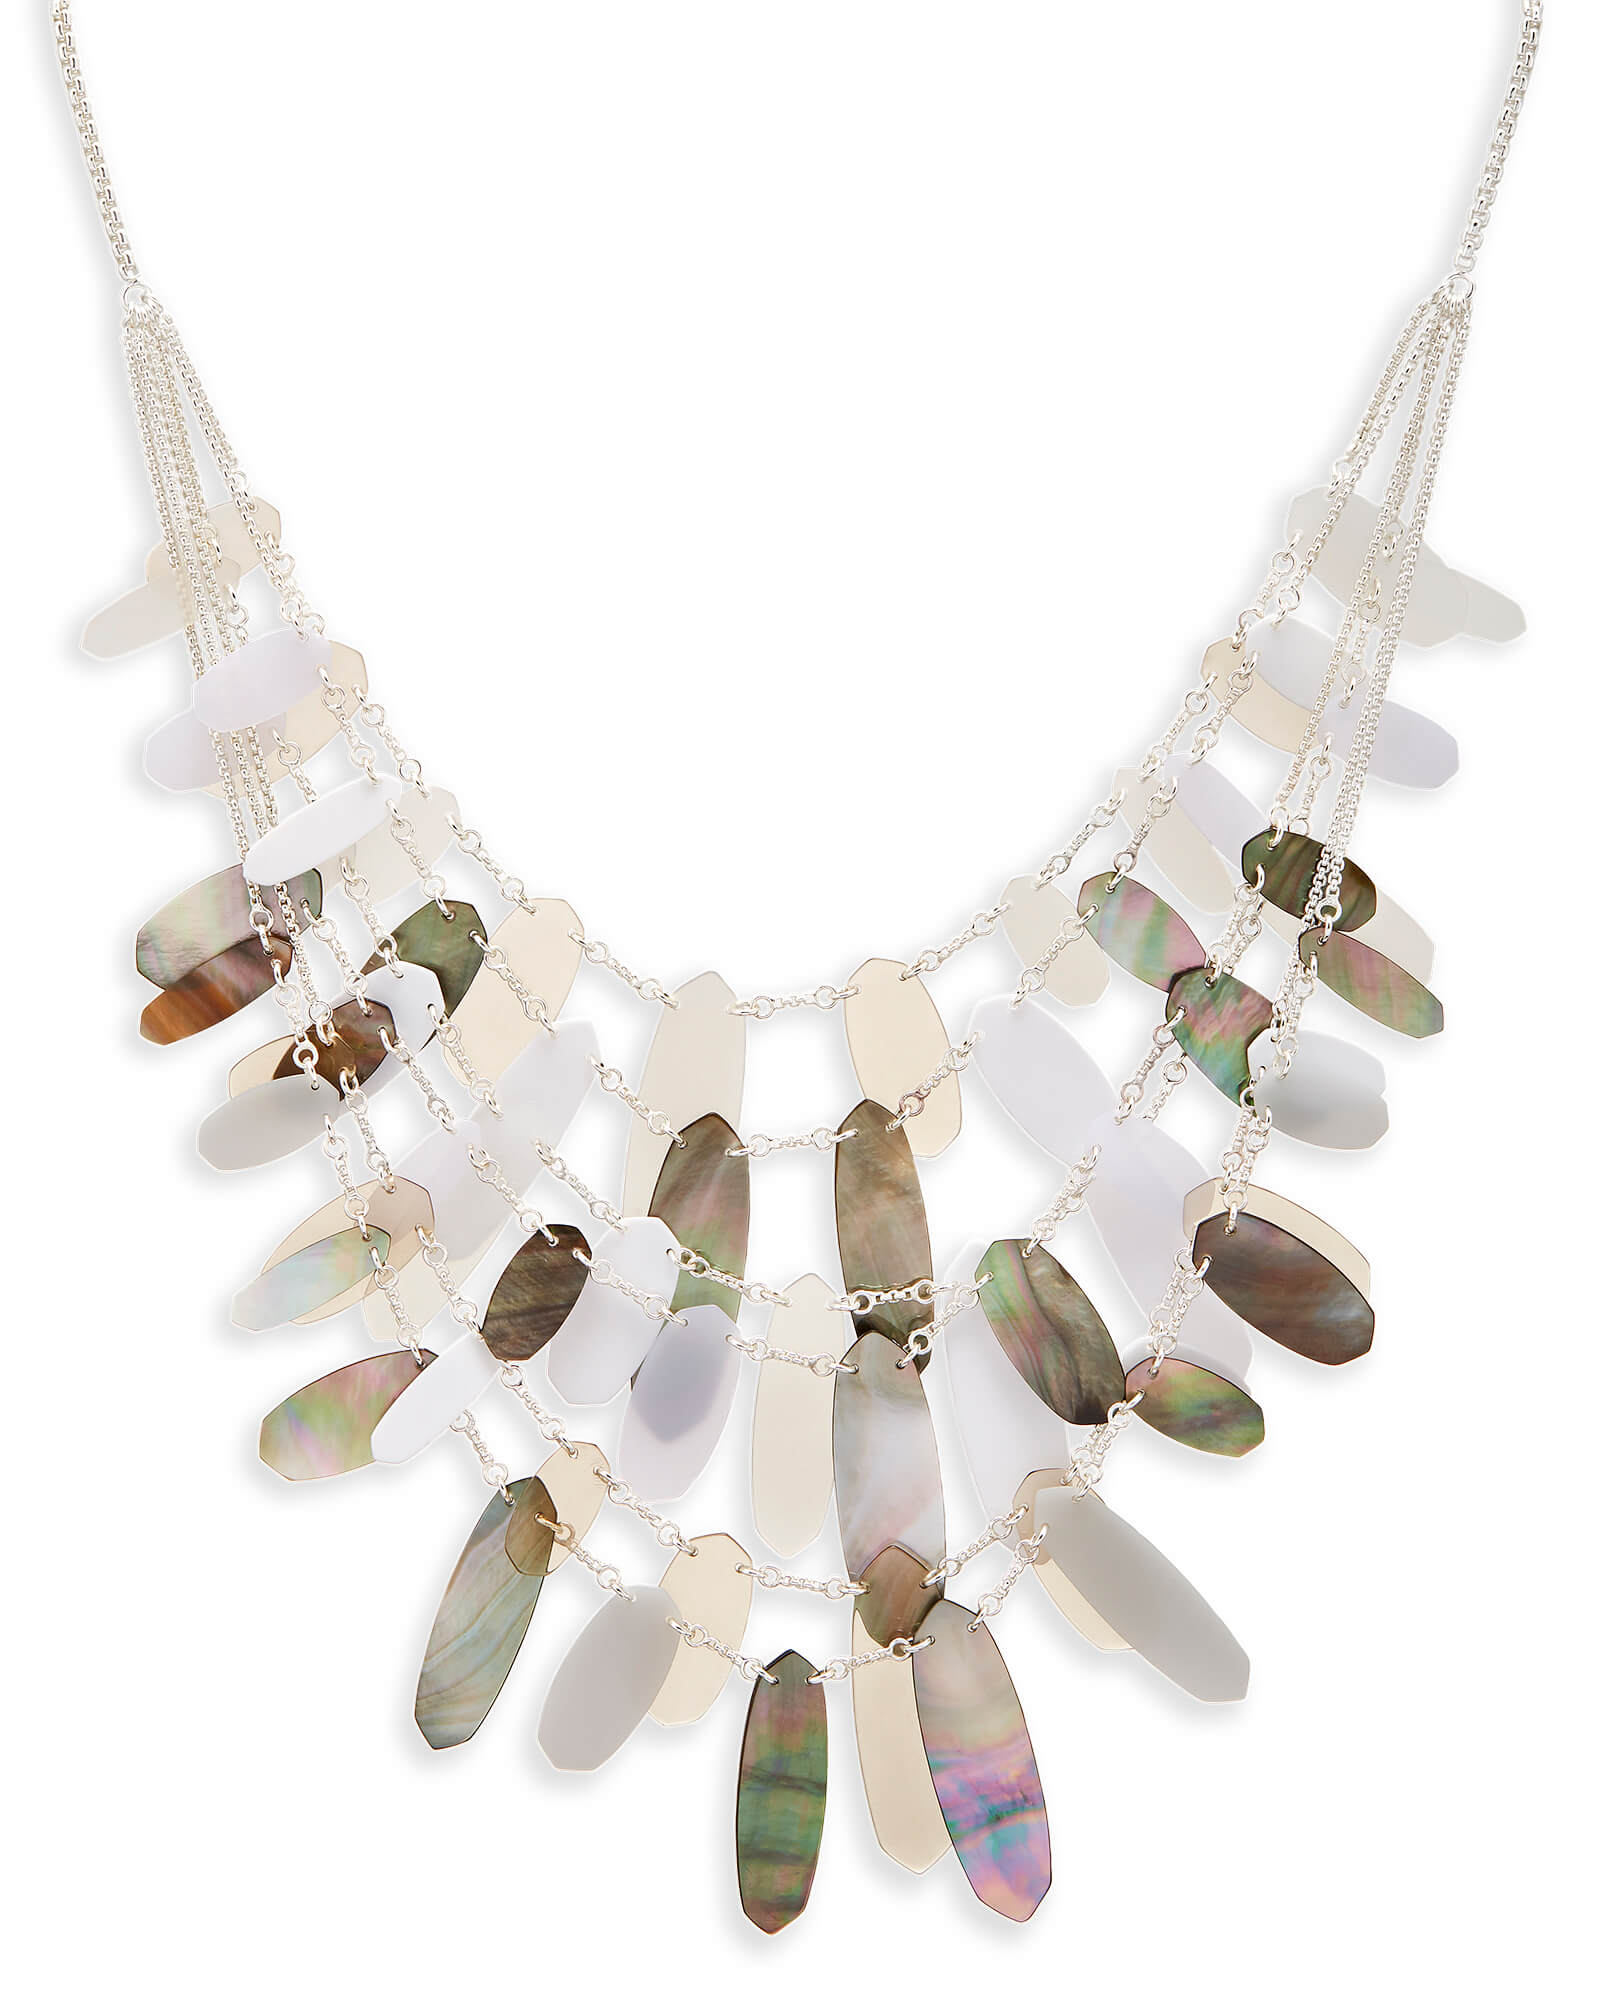 Patricia Statement Necklace in Neutral Mix